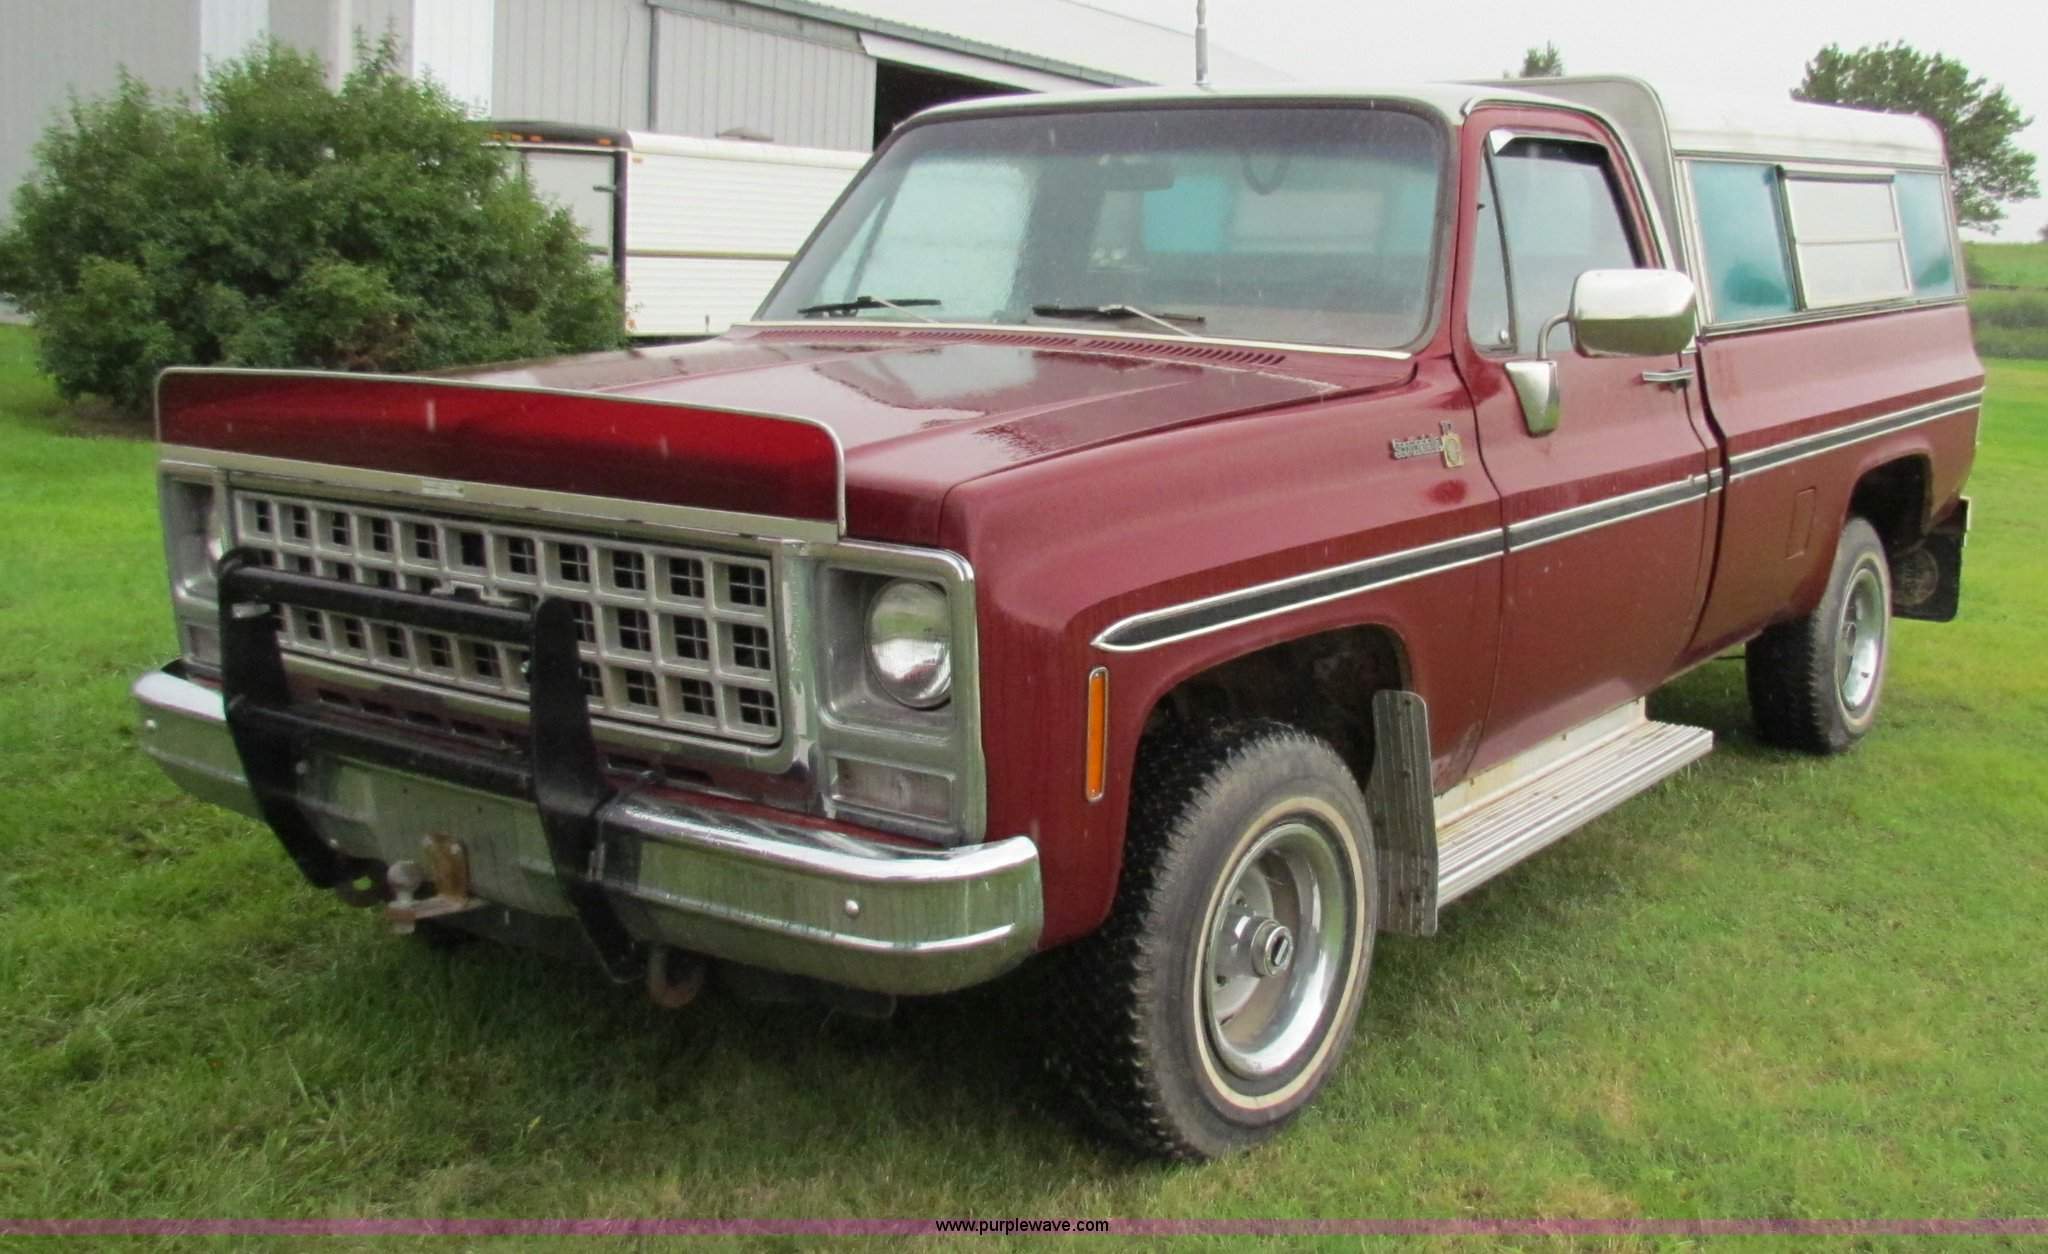 1980 Chevrolet Scottsdale Pickup Truck Item G4077 Sold Chevy Image For